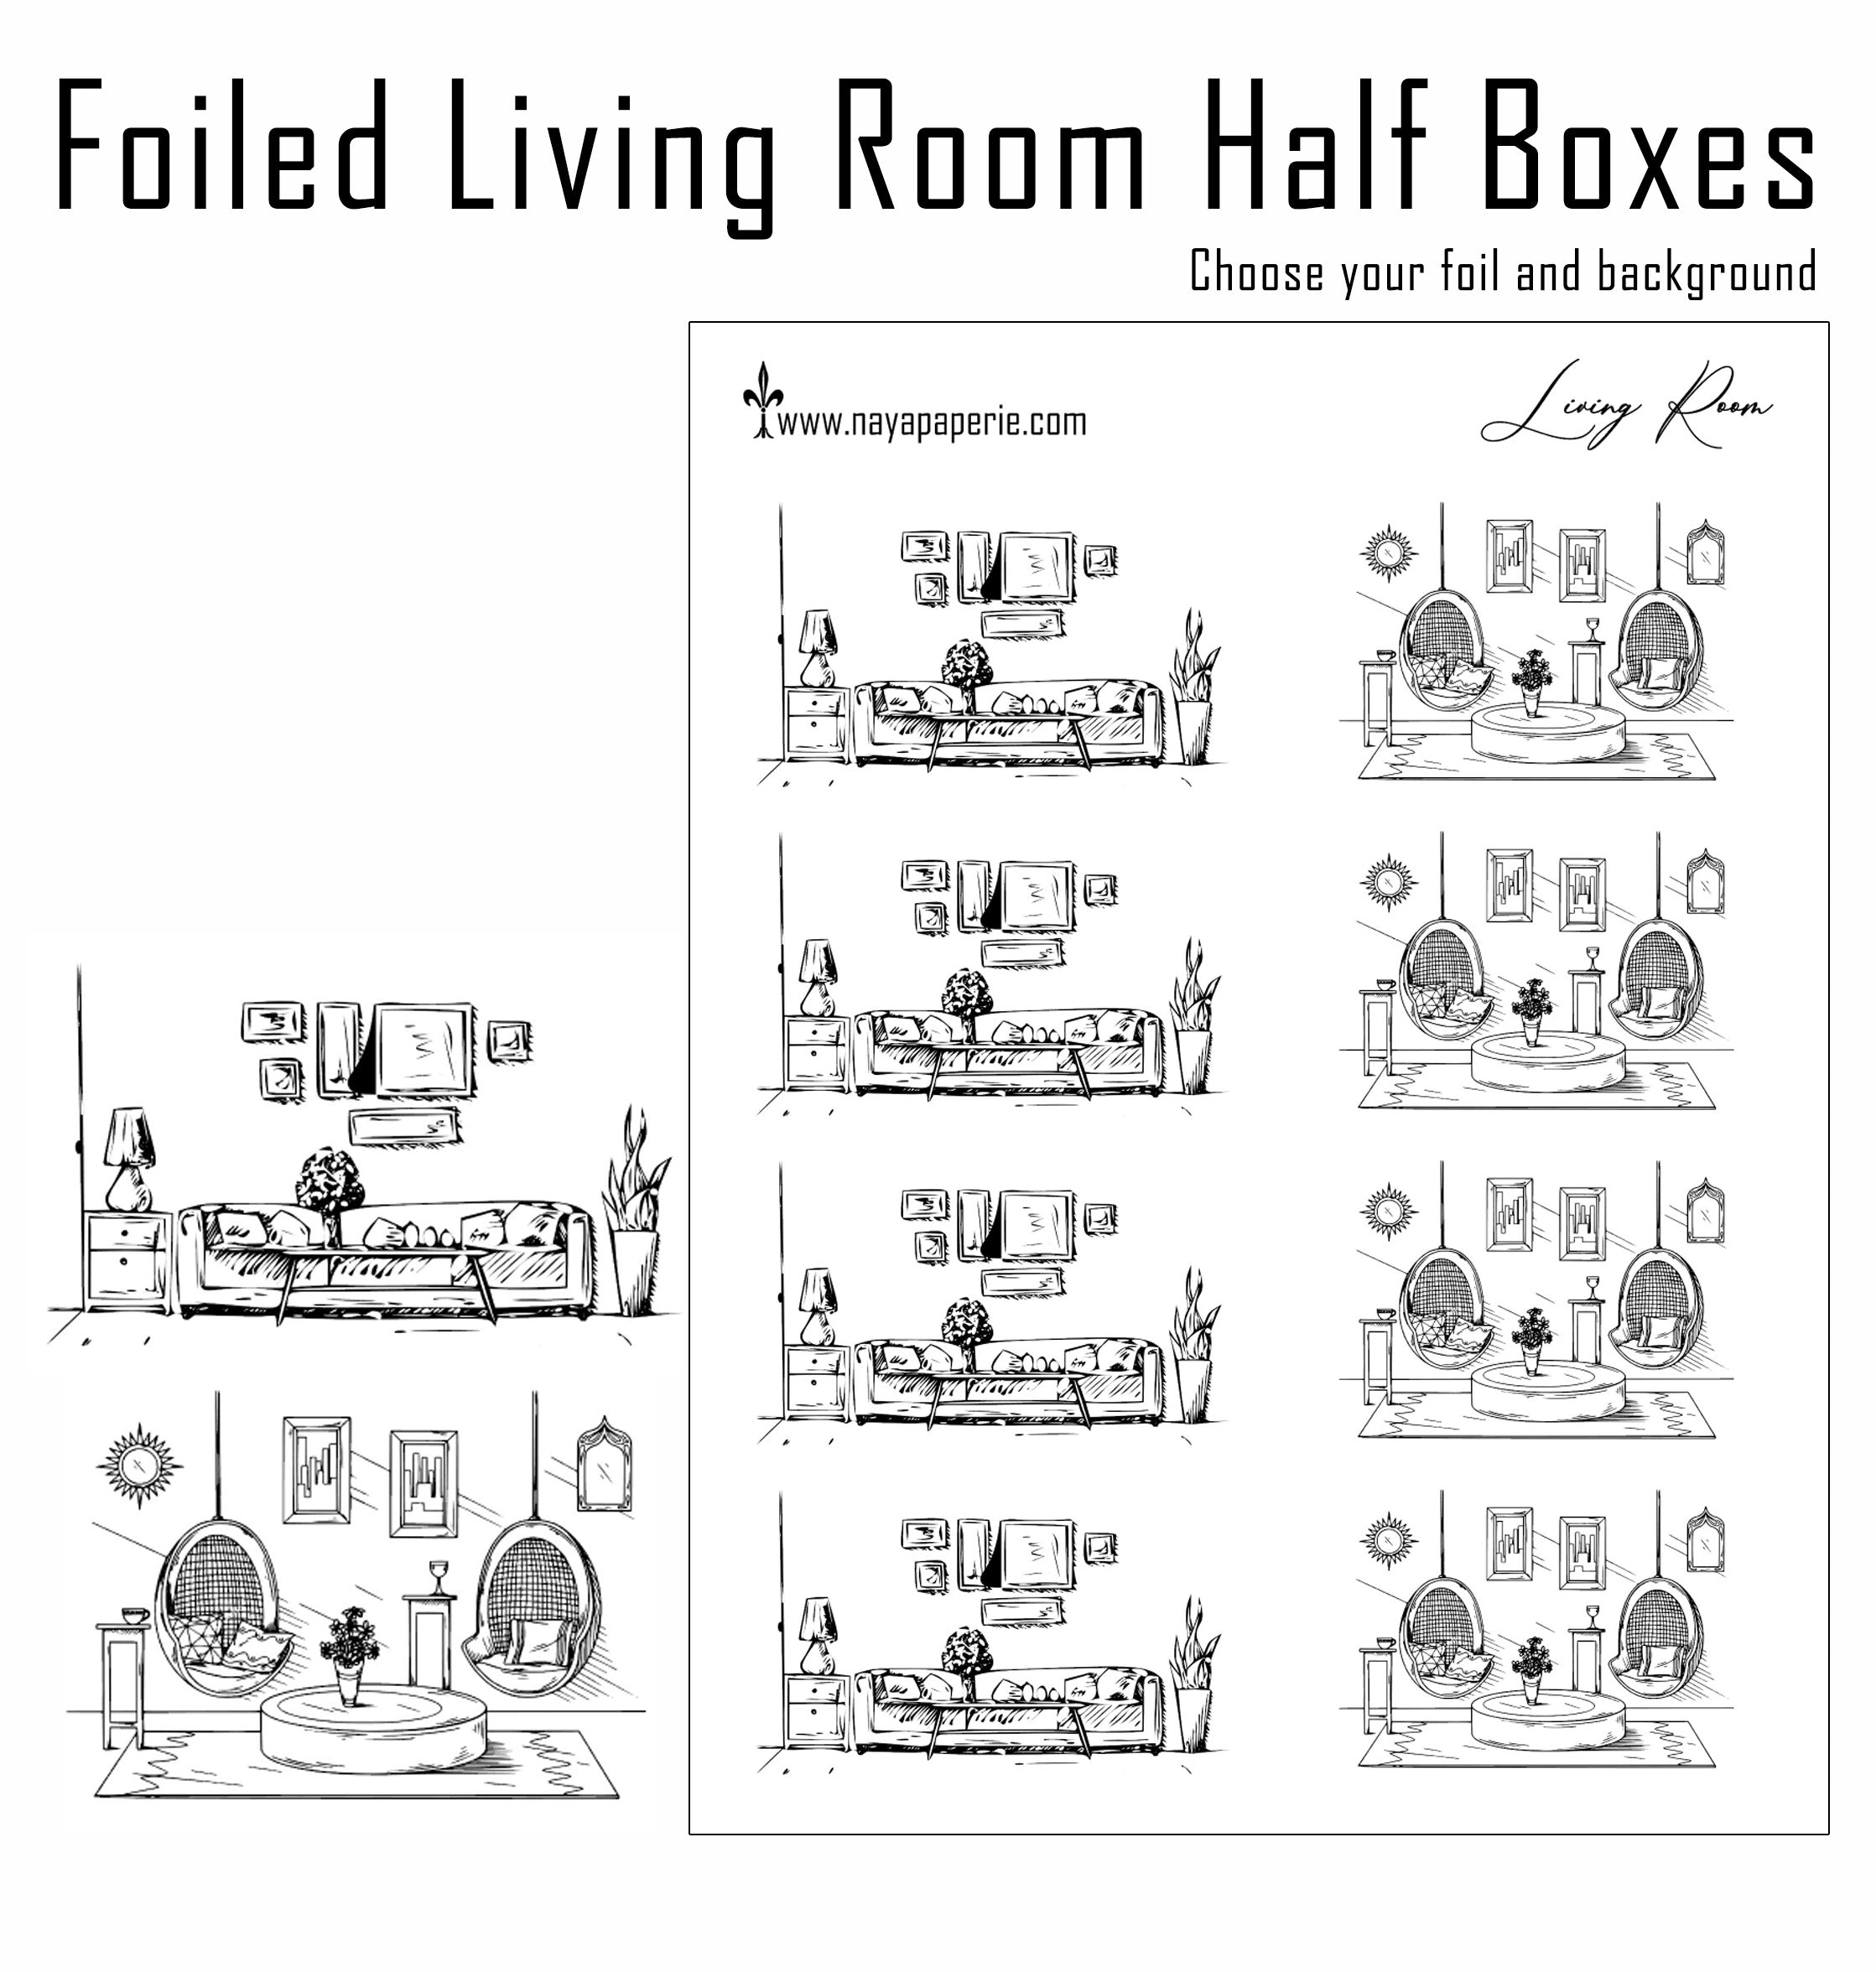 Foiled -  Living Room Half Boxes